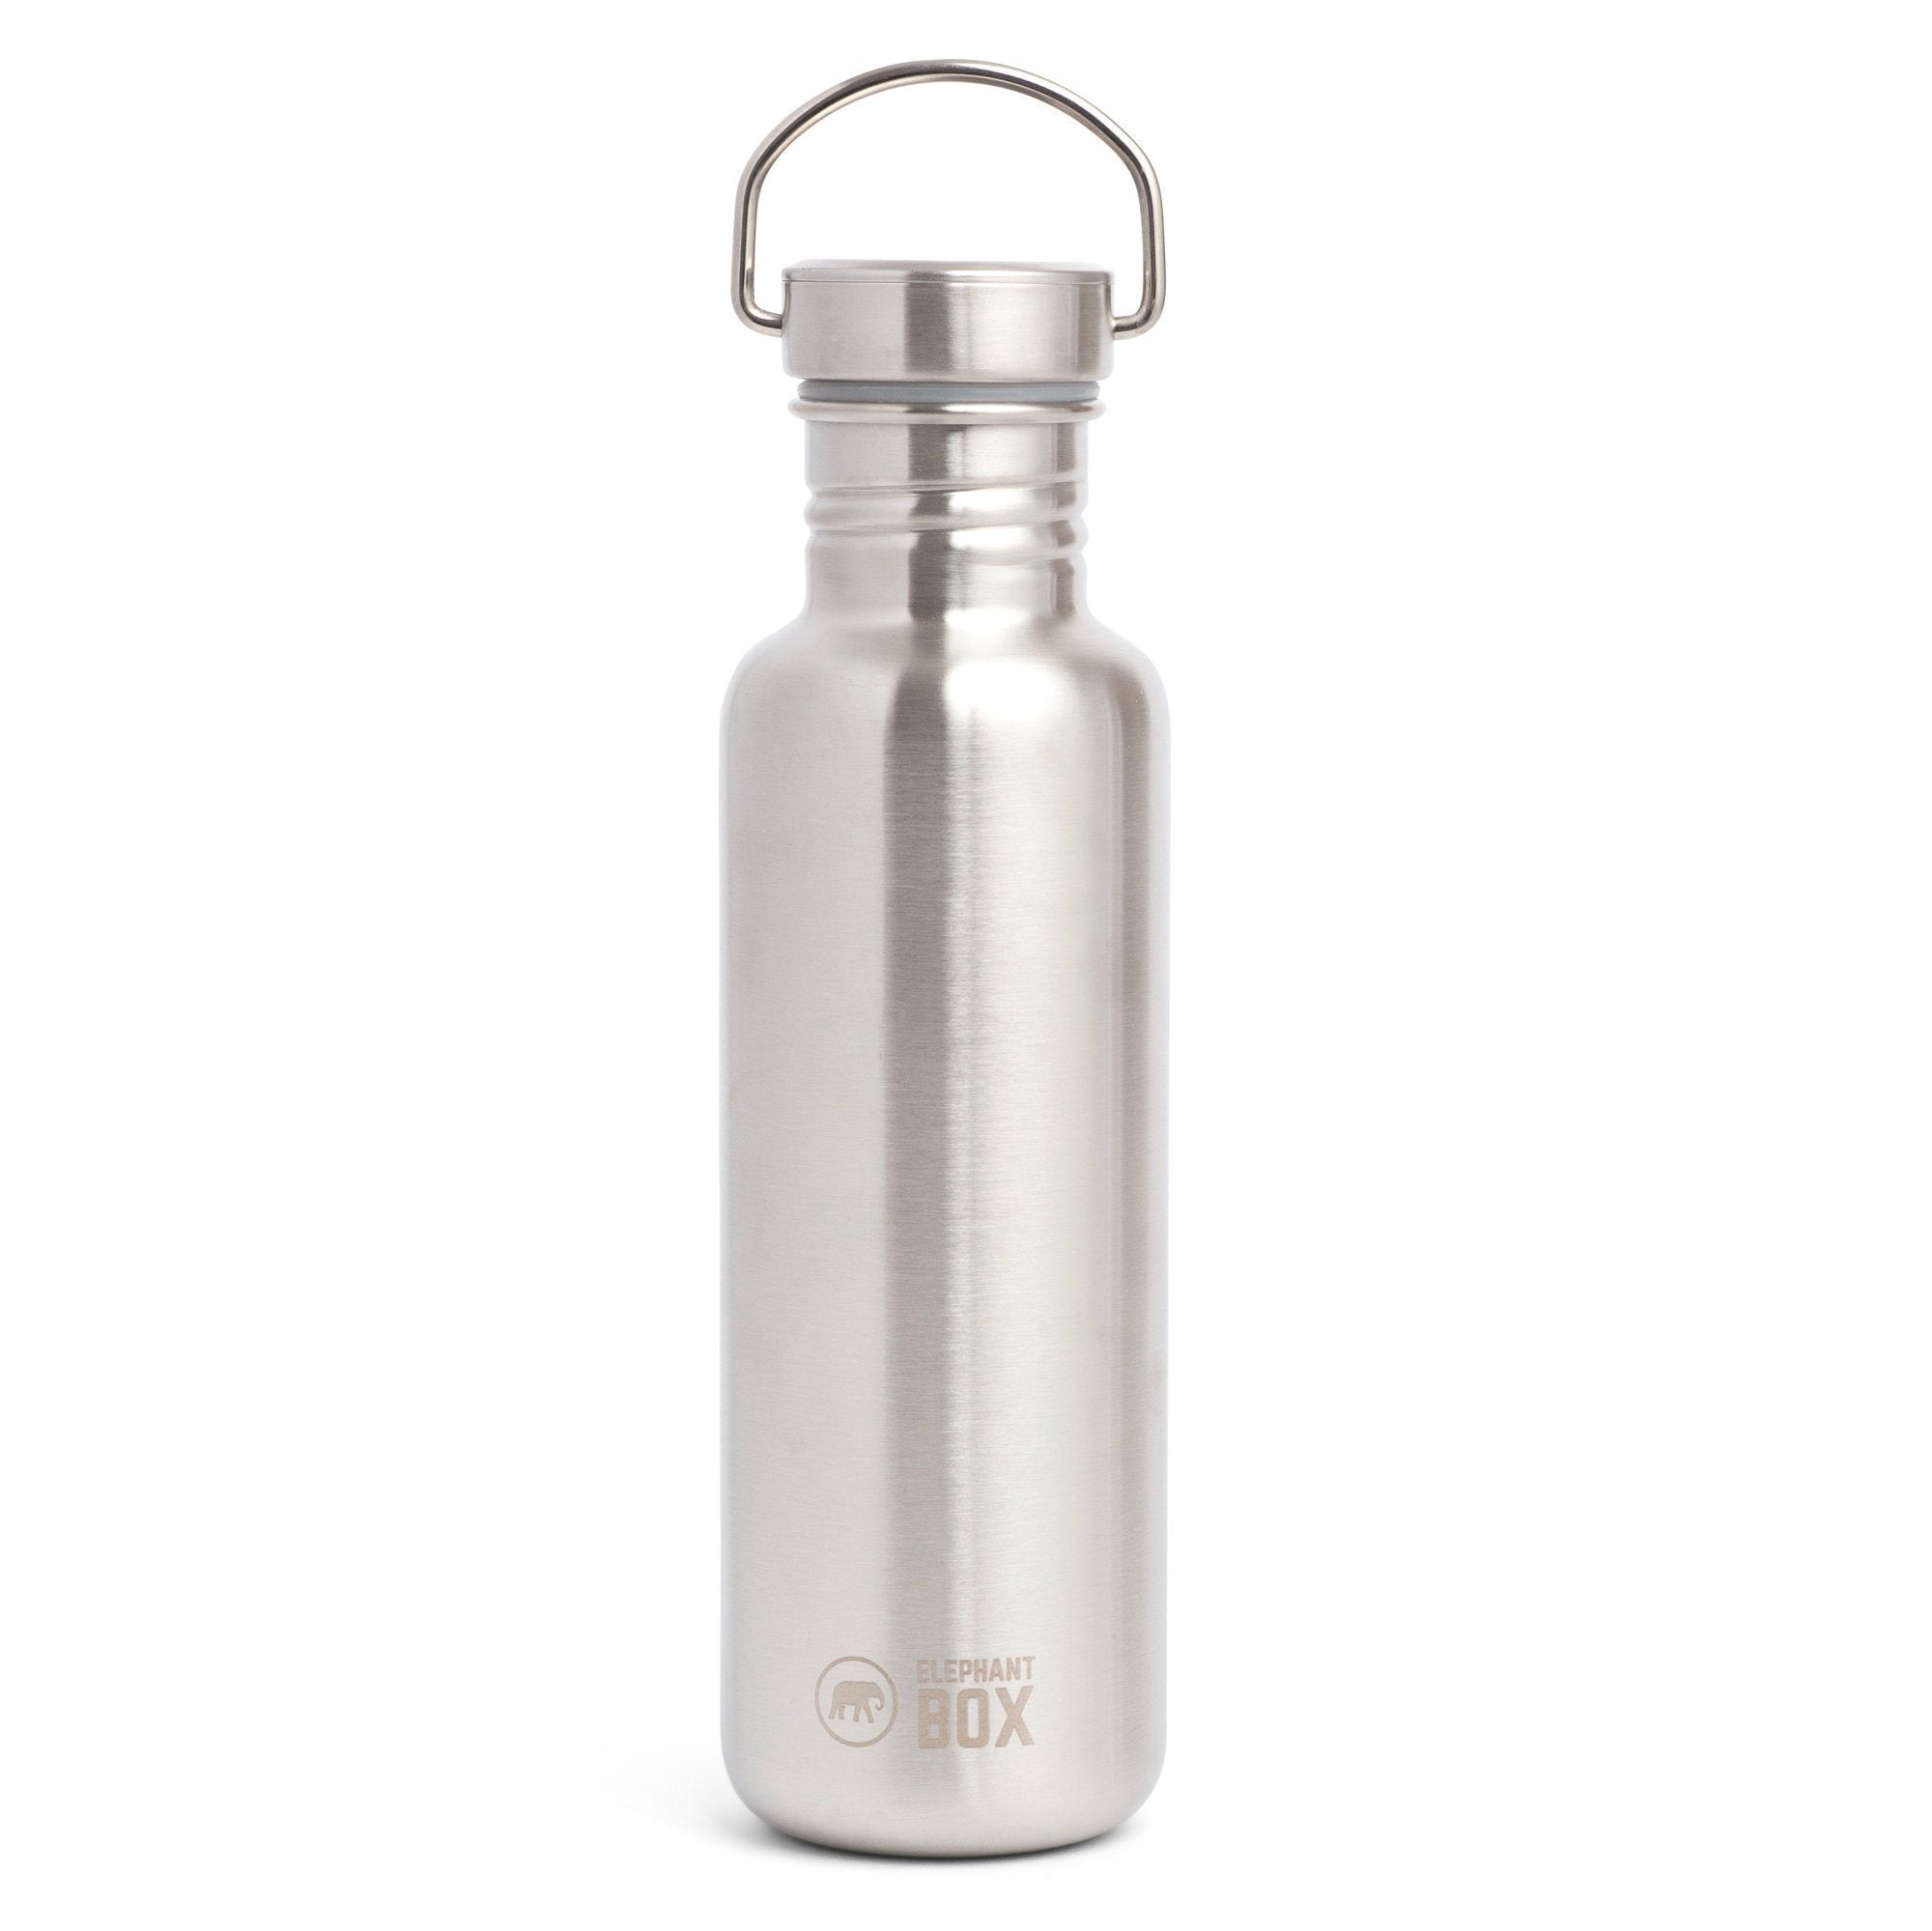 Single-Wall Water Bottle - 800ml Elephant Box